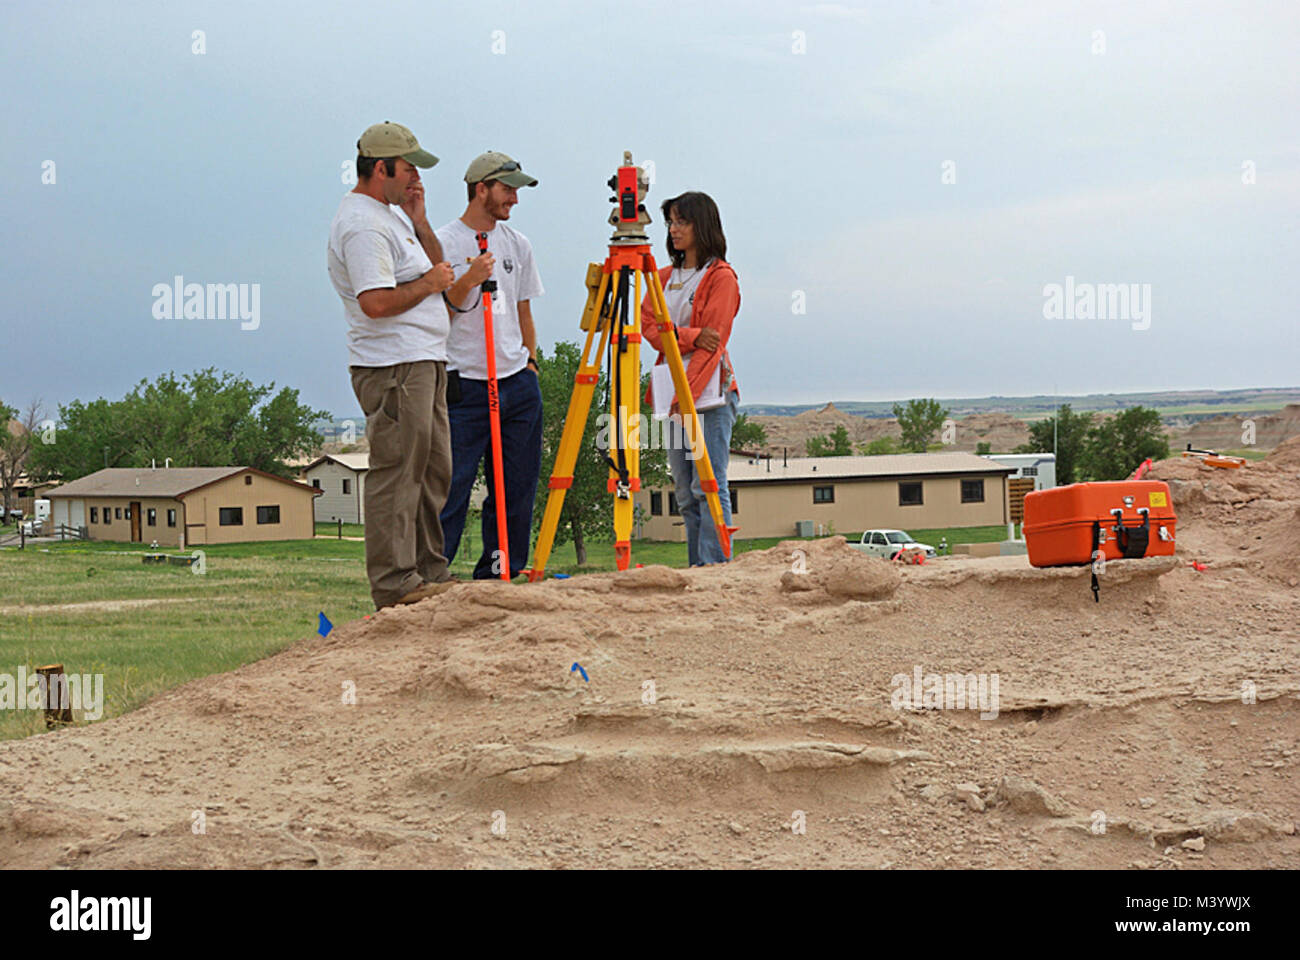 Michael, Danny & Michelle Preparing the Saber Site Grid.  Before digging at the Saber Site, a grid had to be established over the site for reference. Stock Photo